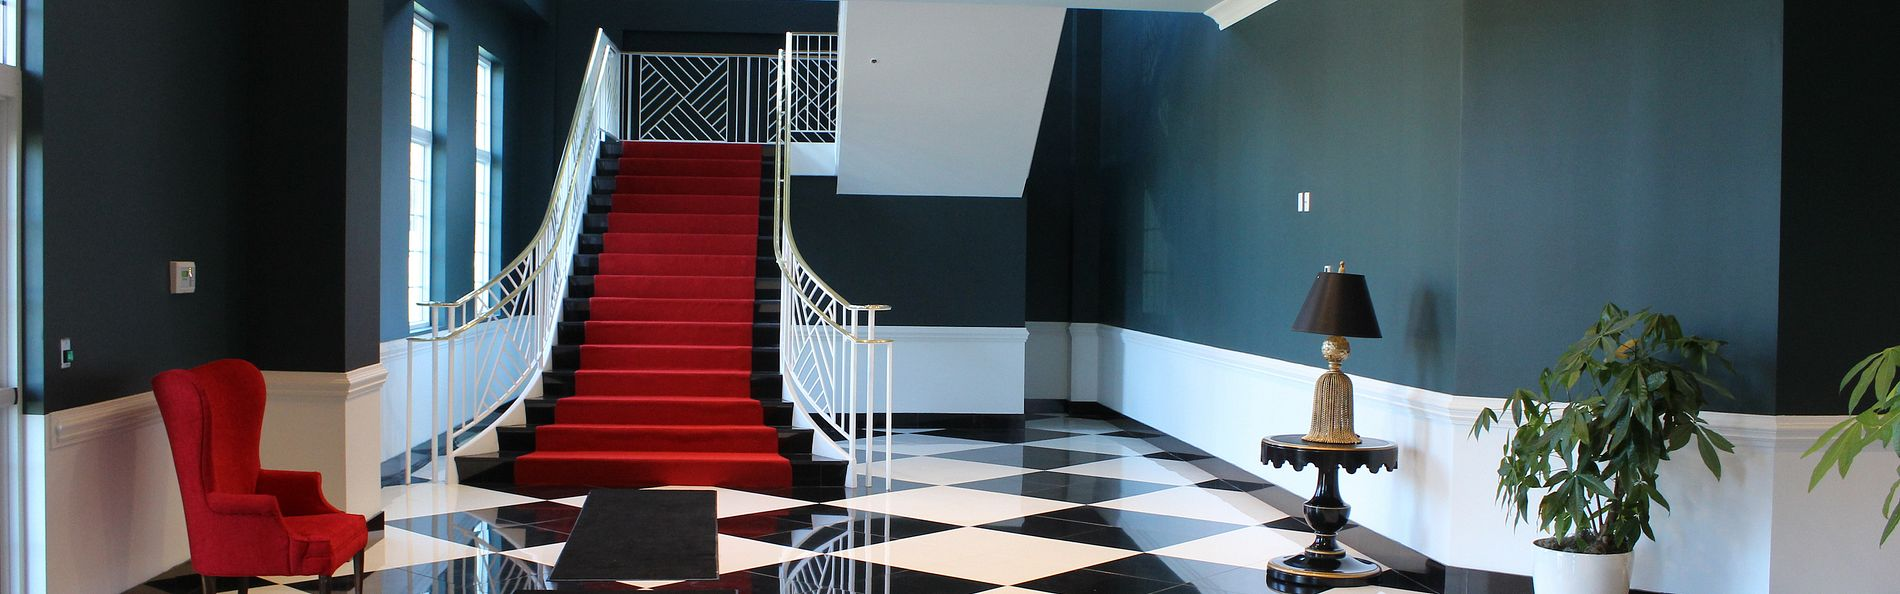 Red stair case with checkered flooring in the Greenbrier